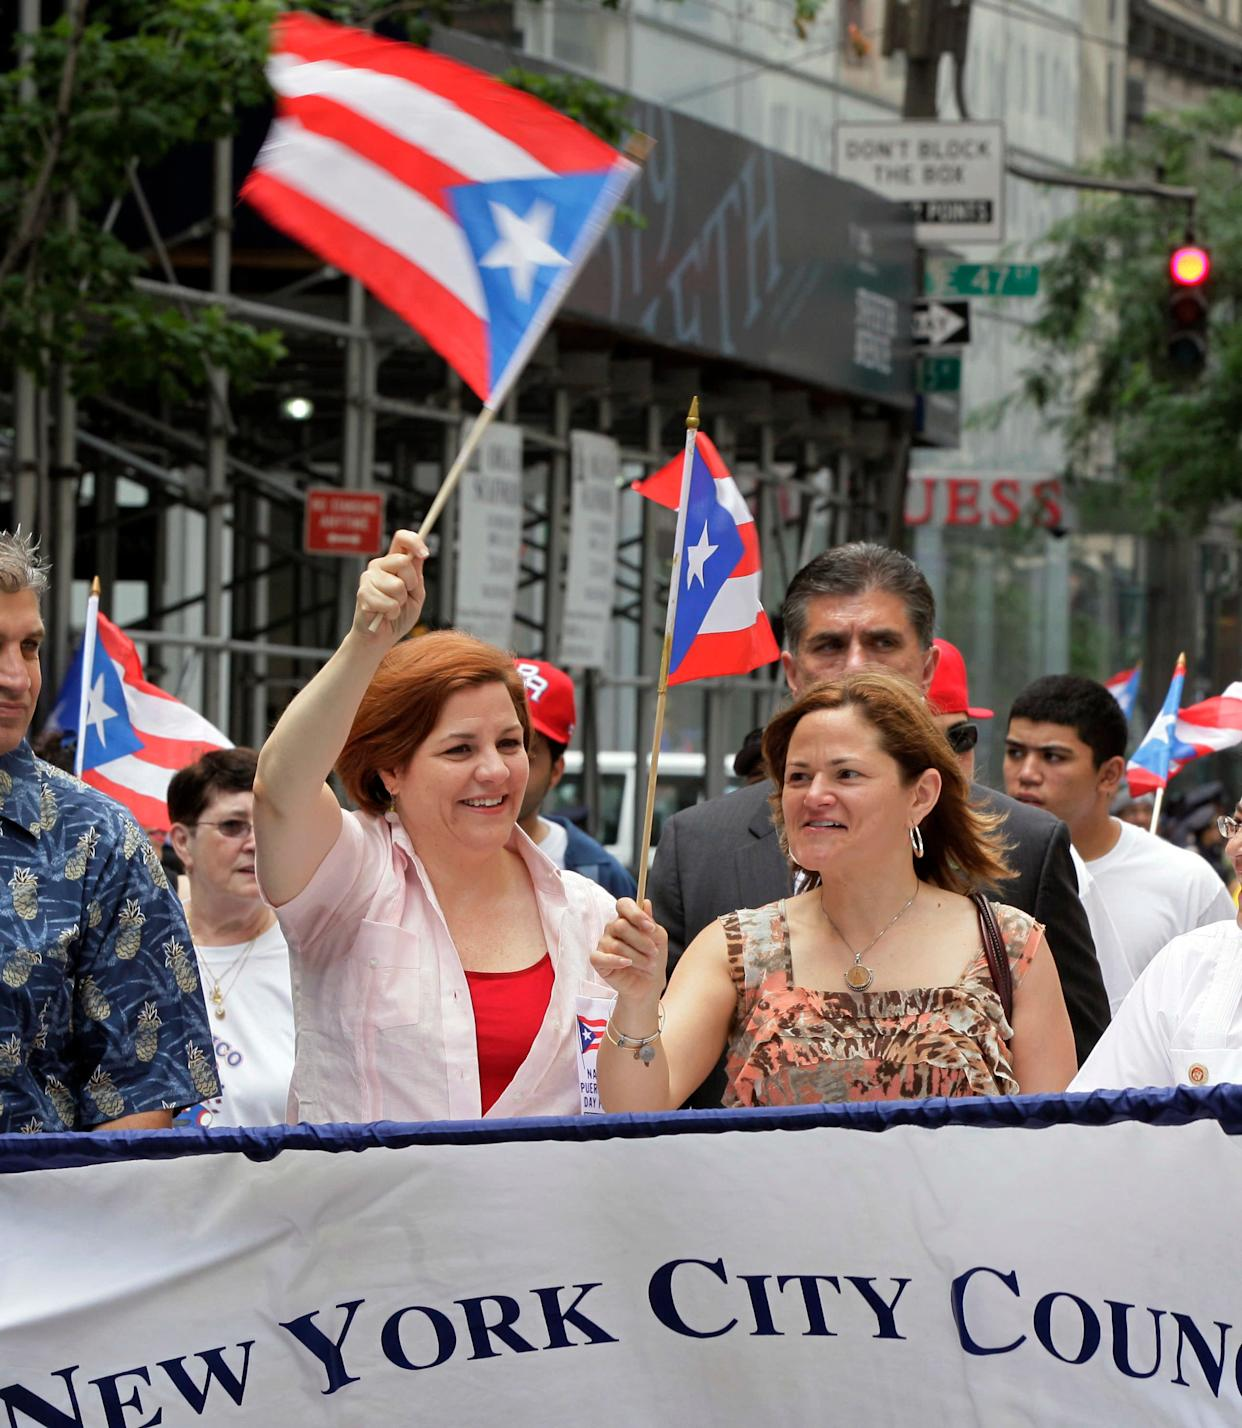 """Many Puerto Ricans who favor statehood already live in U.S. states. Puerto Ricans received citizenship, along with military conscription, in 1917. Today, some <a href=""""http://www.pewhispanic.org/2011/06/13/a-demographic-portrait-of-puerto-ricans/"""" rel=""""nofollow noopener"""" target=""""_blank"""" data-ylk=""""slk:4.6 million people of Puerto Rican origin live"""" class=""""link rapid-noclick-resp"""">4.6 million people of Puerto Rican origin live</a> in the United States, compared to 3.7 million on the island, according to the Pew Hispanic Center. In the words of historian Angel Collado-Schwartz, """"Statehood is available to all Puerto Ricans -- you have 50 states to move to."""""""